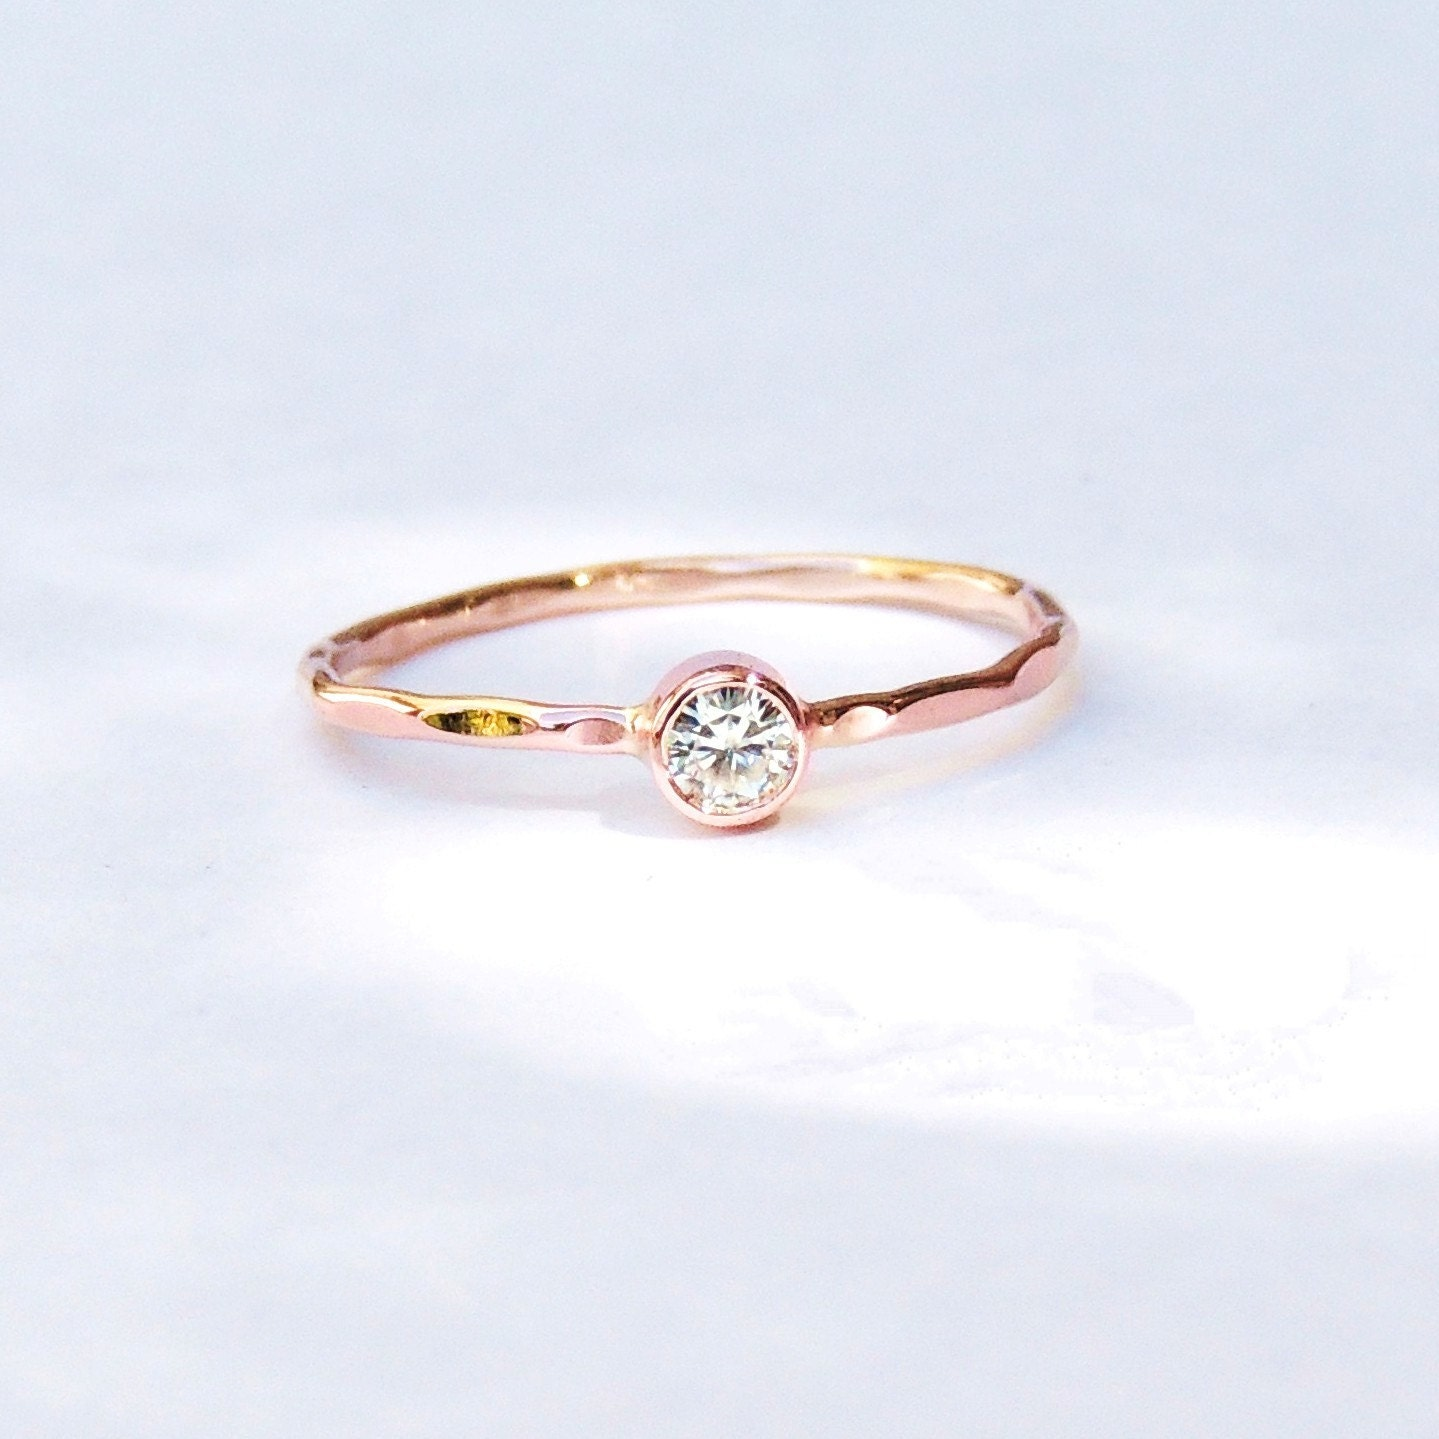 engagement ring dainty delicate gold ring moissanite white